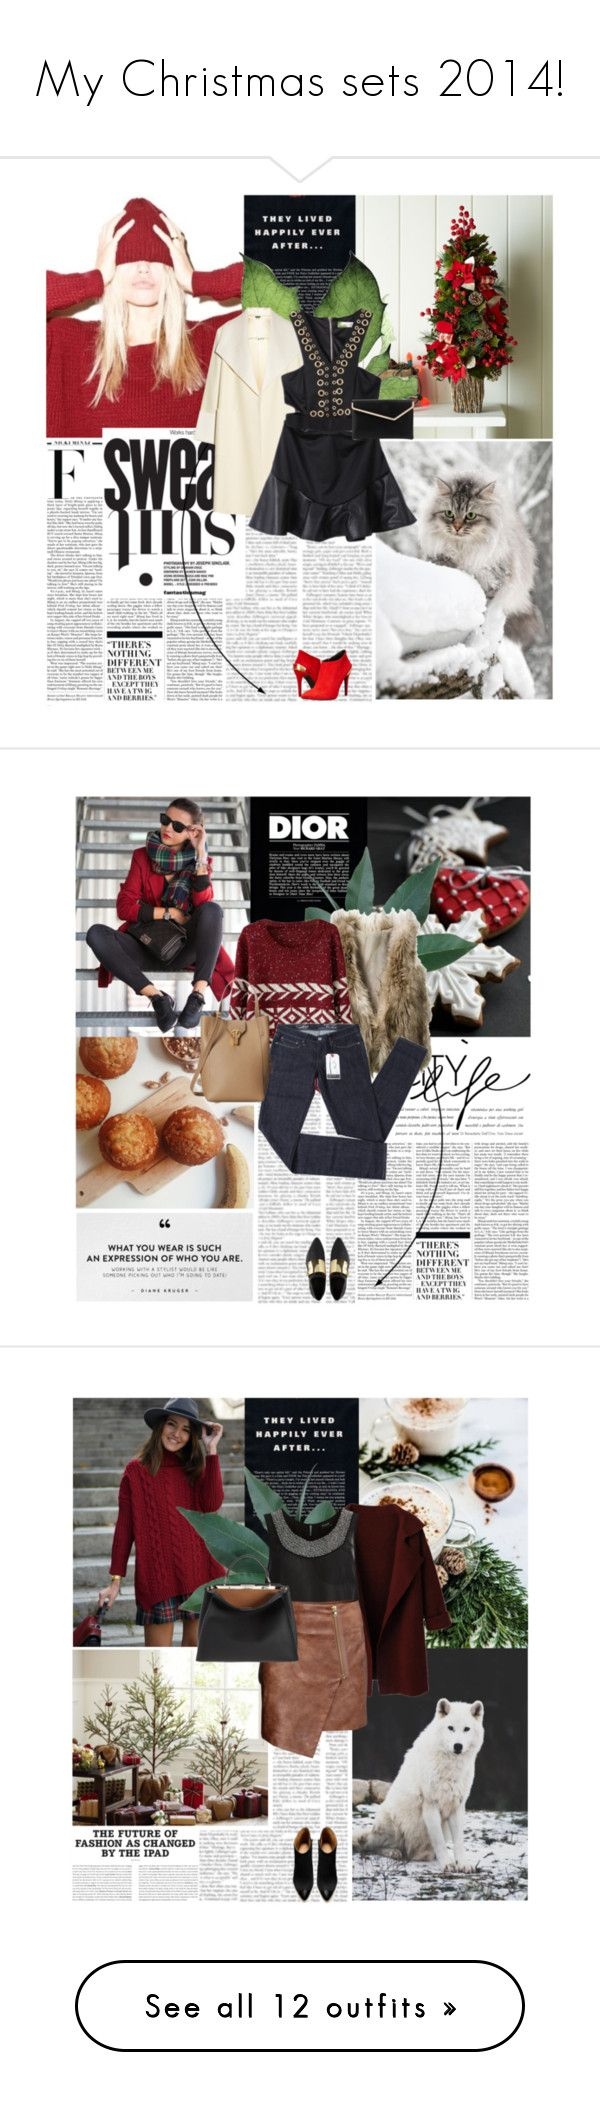 """My Christmas sets 2014!"" by qarlla ❤ liked on Polyvore featuring Nicki Minaj, Lara, ADAM, Love Moschino, Henri Bendel, Christian Dior, Forum, Levi's, ASOS and Oscar de la Renta"